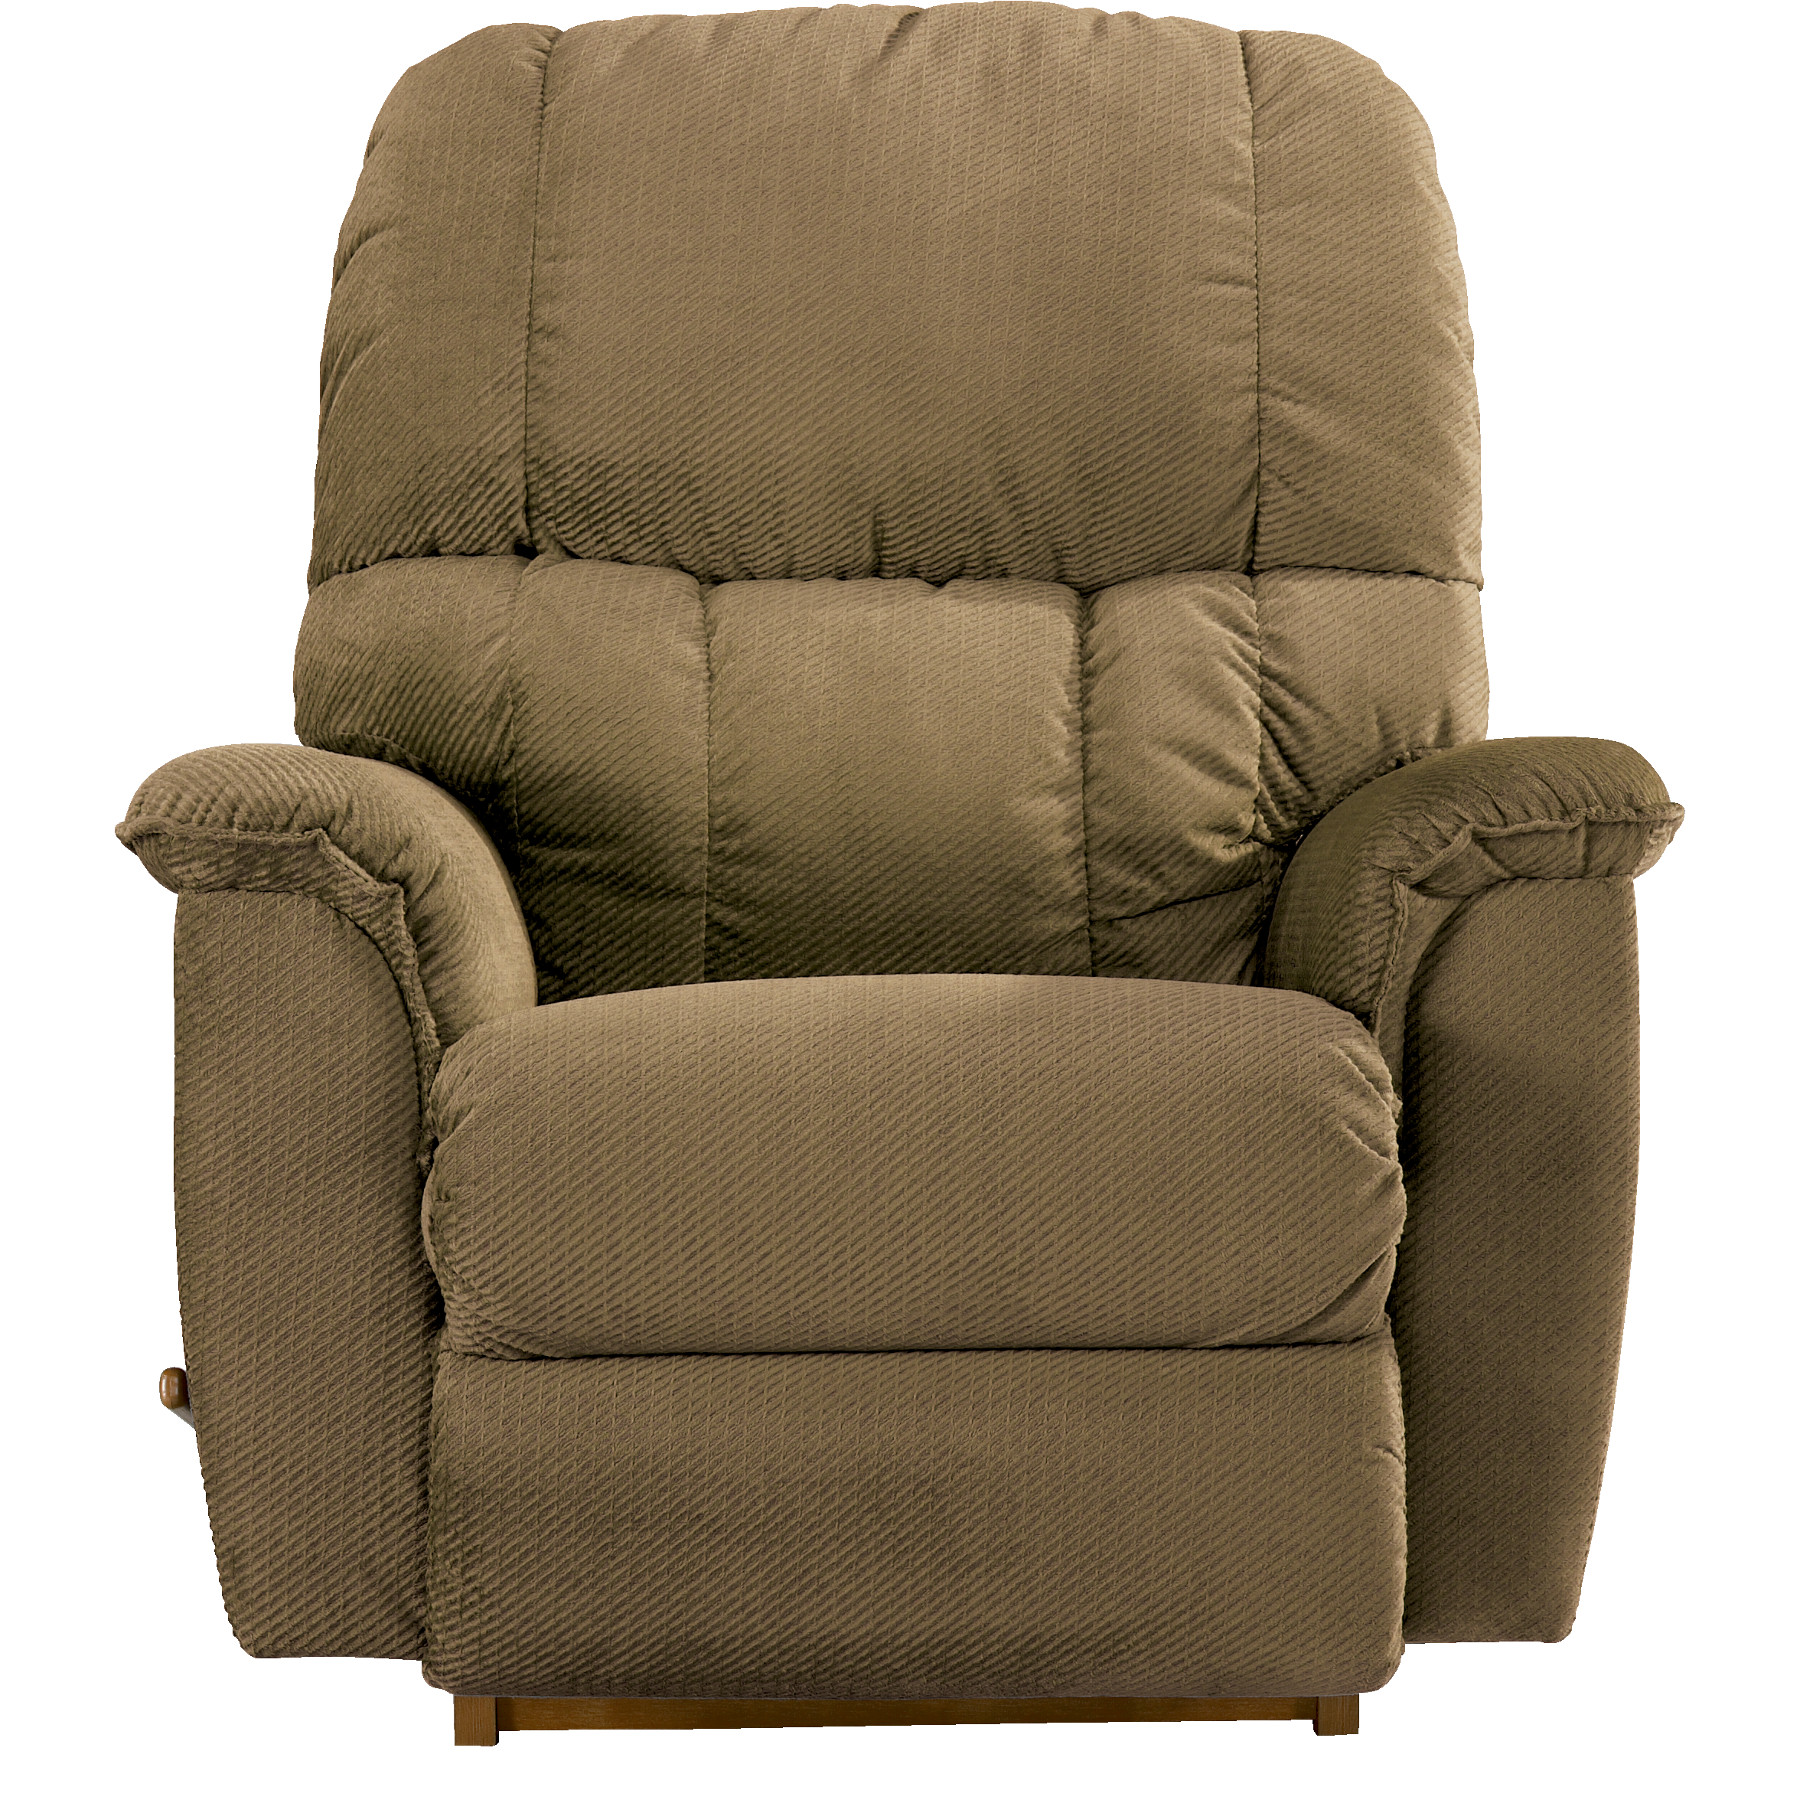 La-Z-Boy IMPERIAL ROCKER RECLINER WALNUT